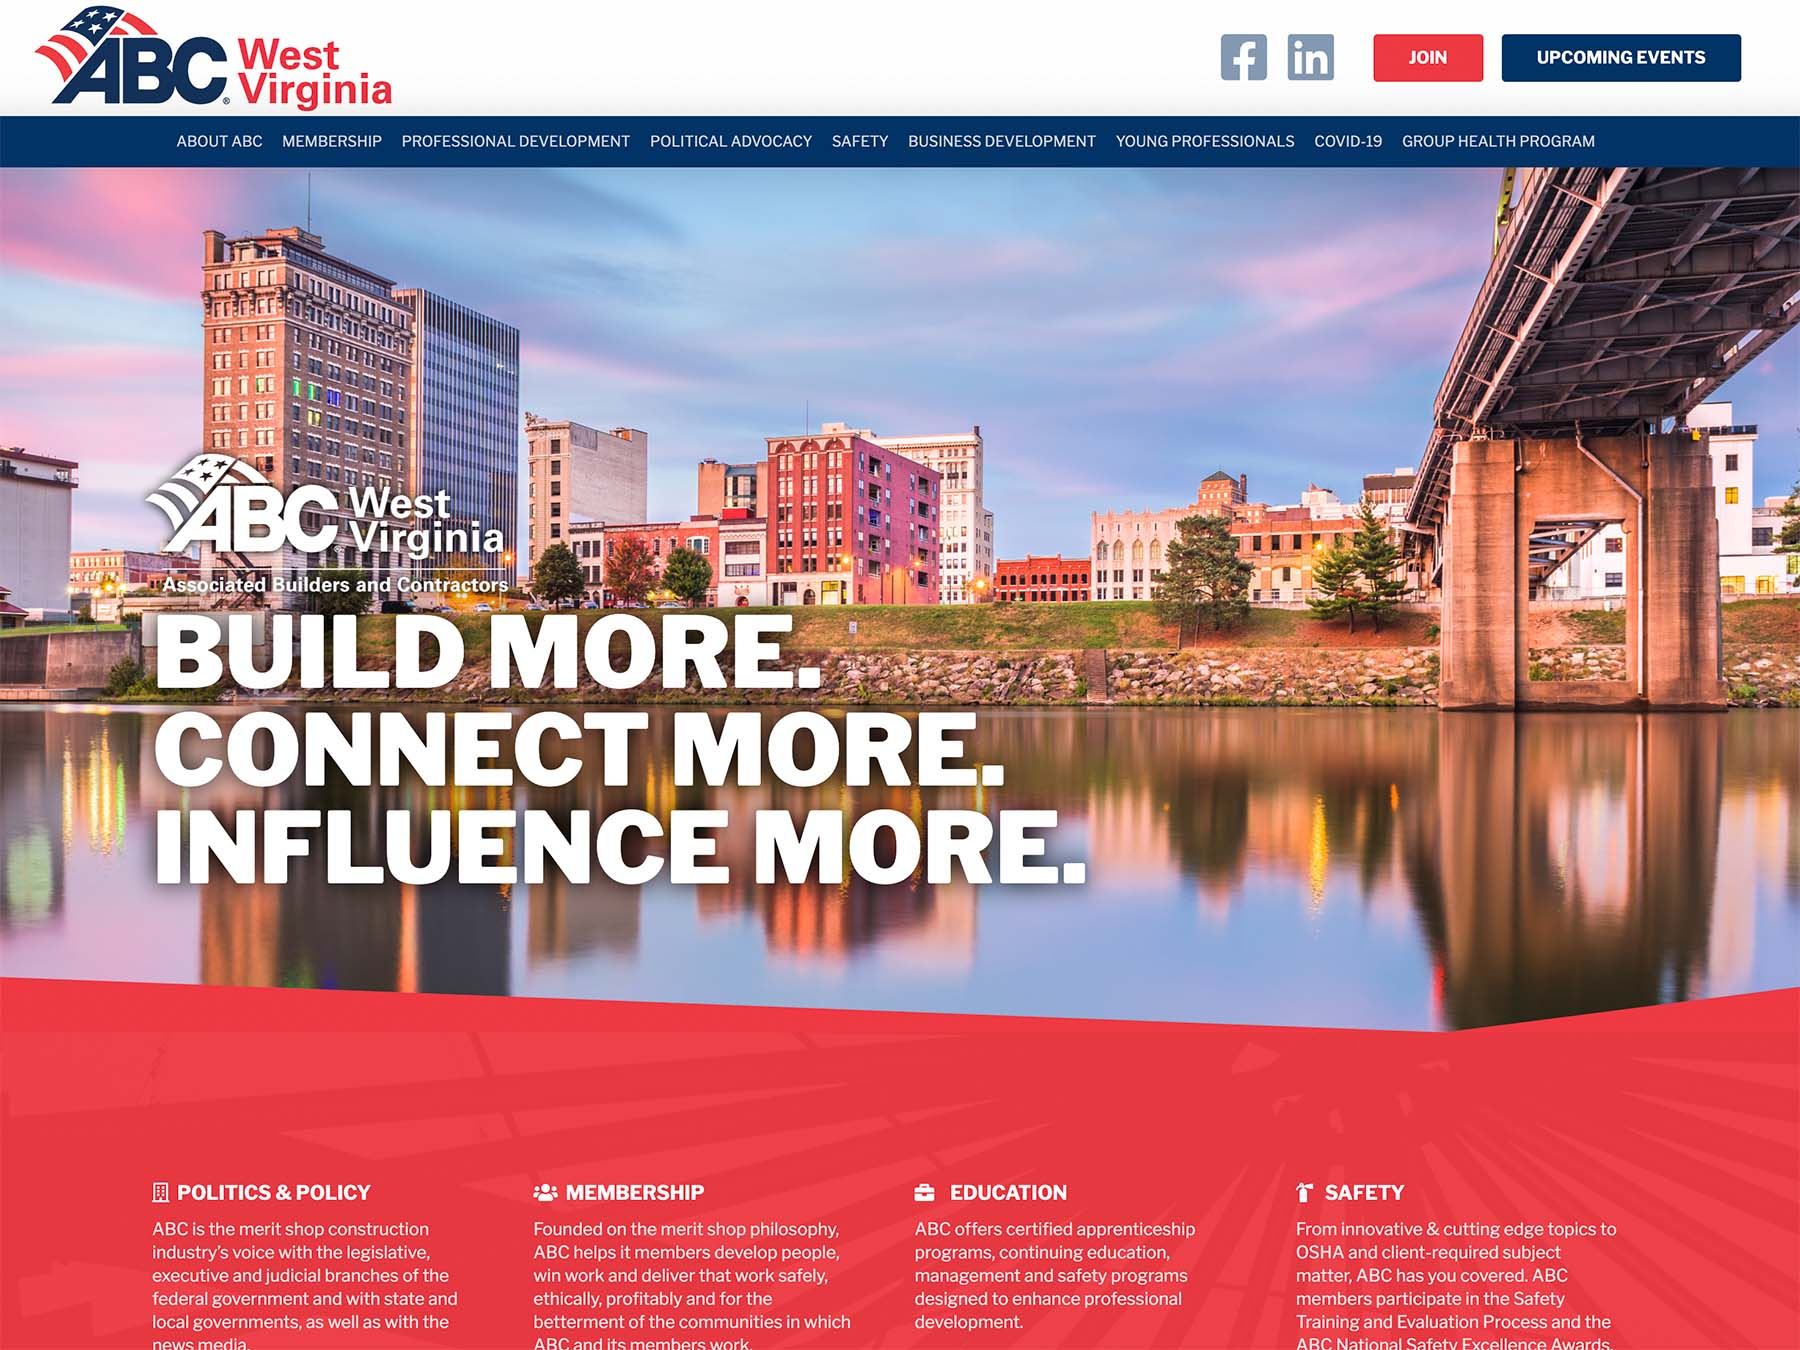 """Featured image for """"ABC West Virginia"""""""